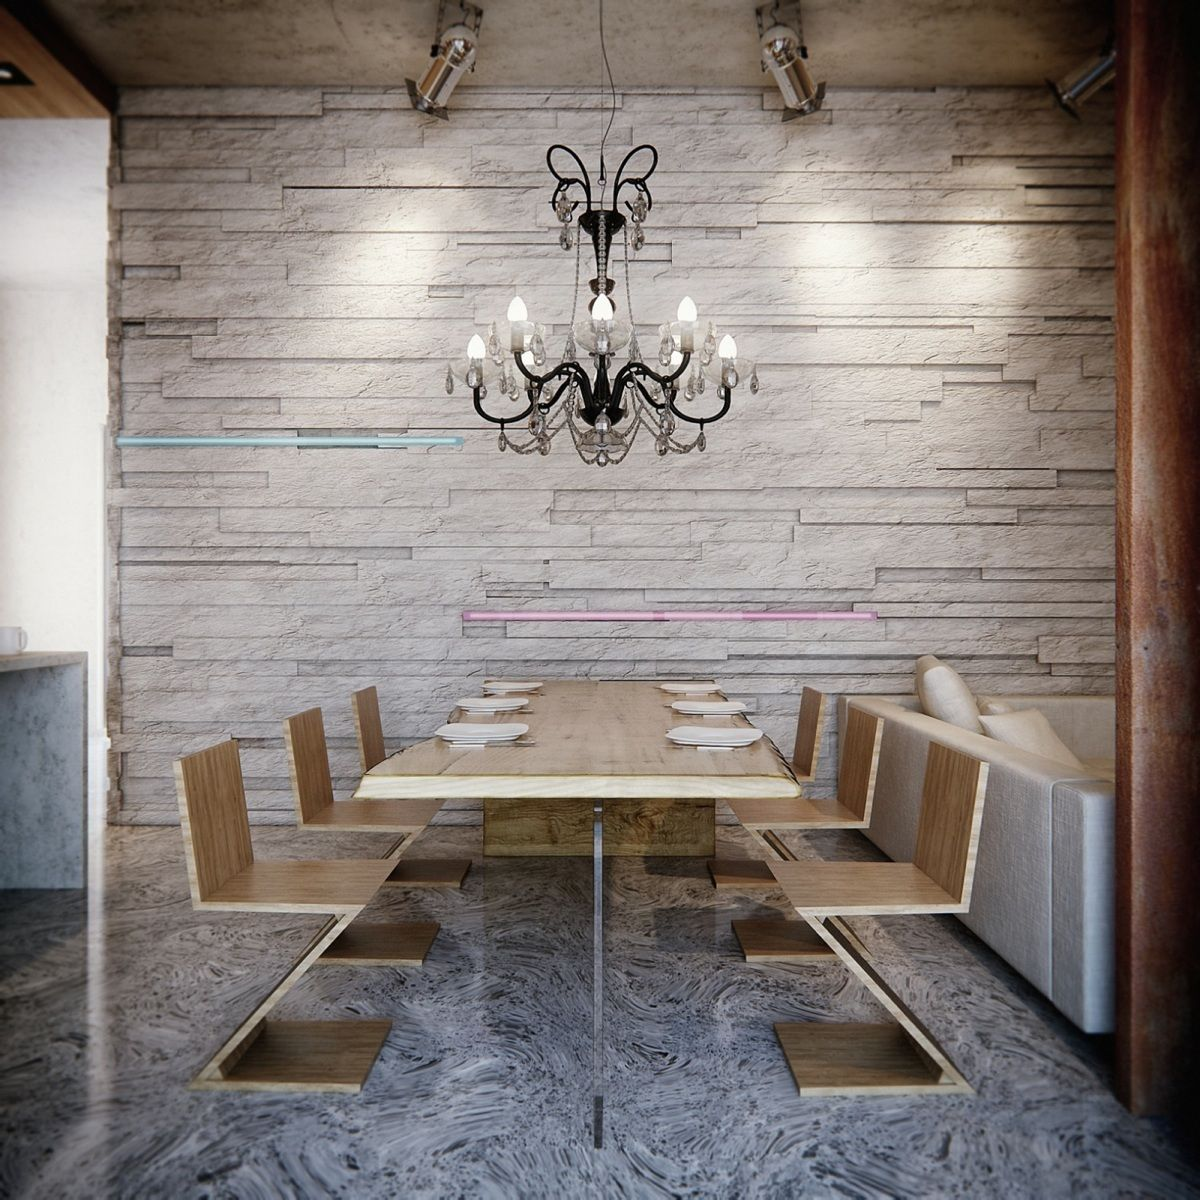 Creative Dining Chairs And A Surprisingly Classical Chandelier Make The Dining  Area Striking.